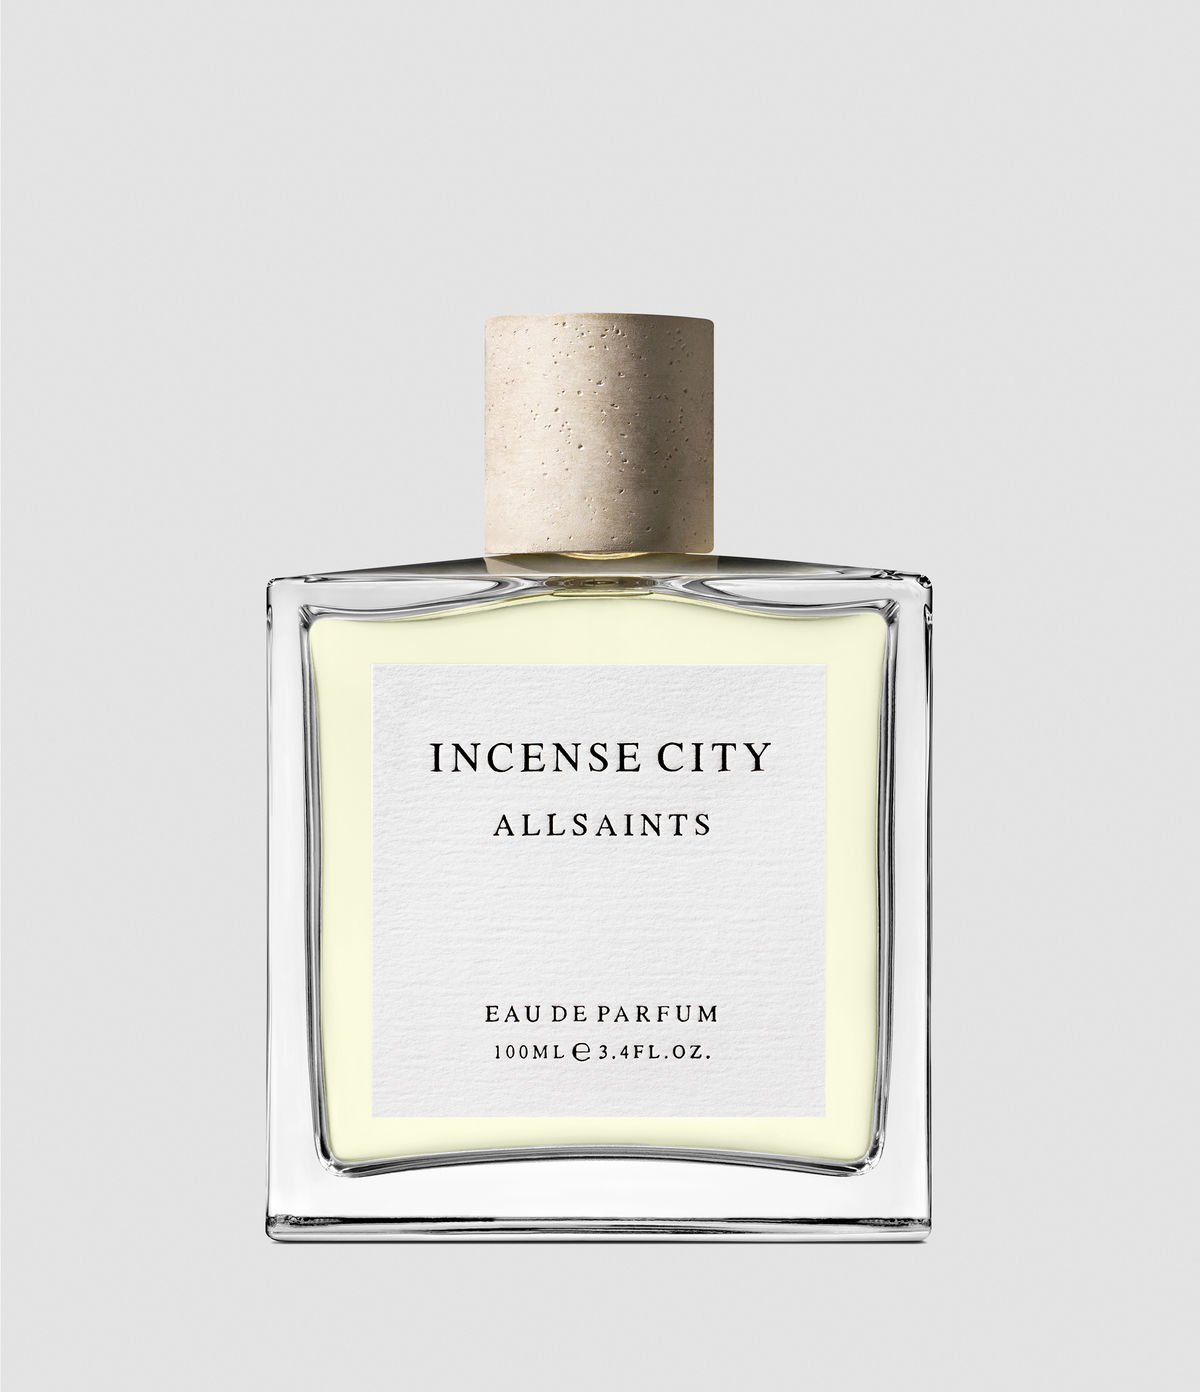 AllSaints Incense City 3.4OZ / 100ML Eau De Parfum Spray